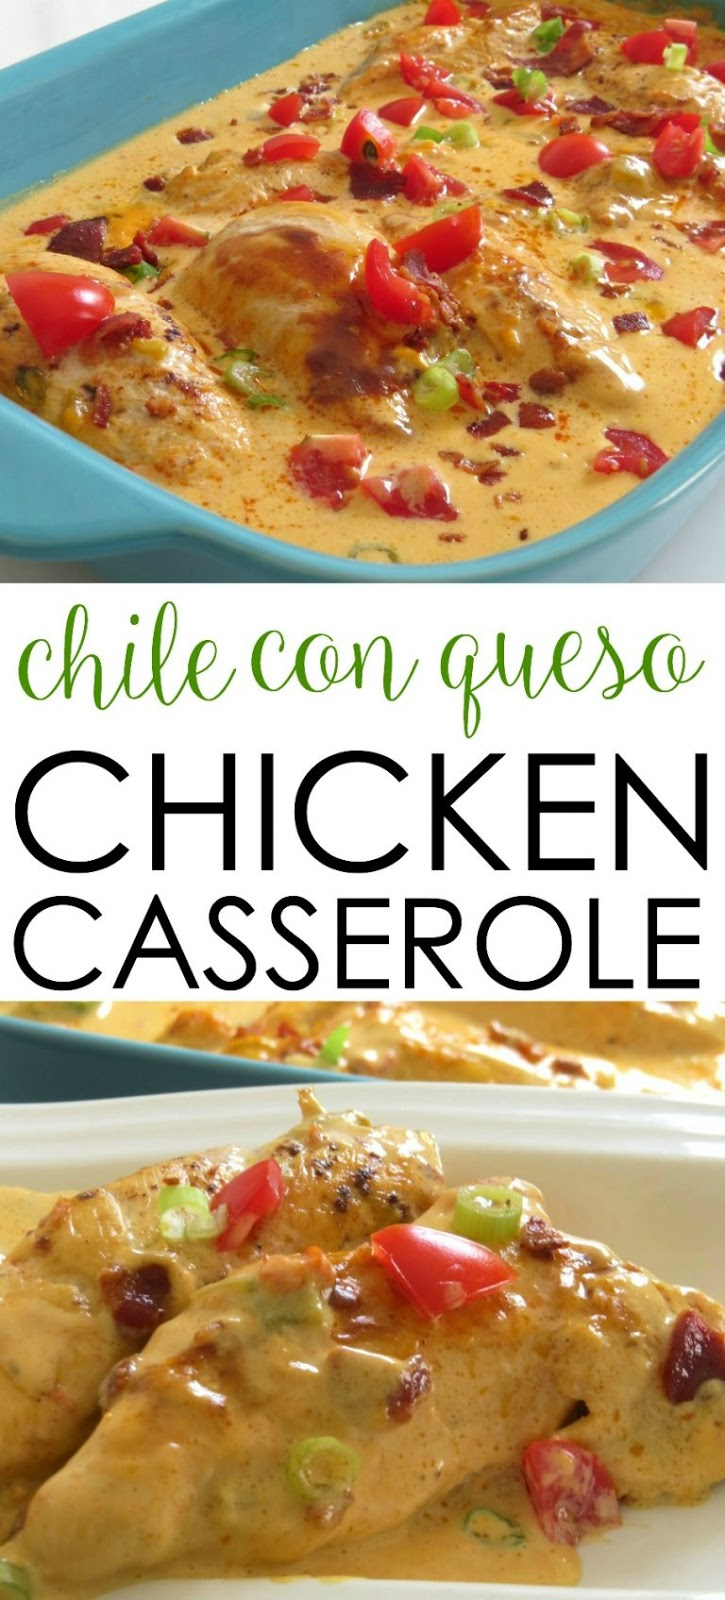 CHILE CON QUESO CHICKEN CASSEROLE